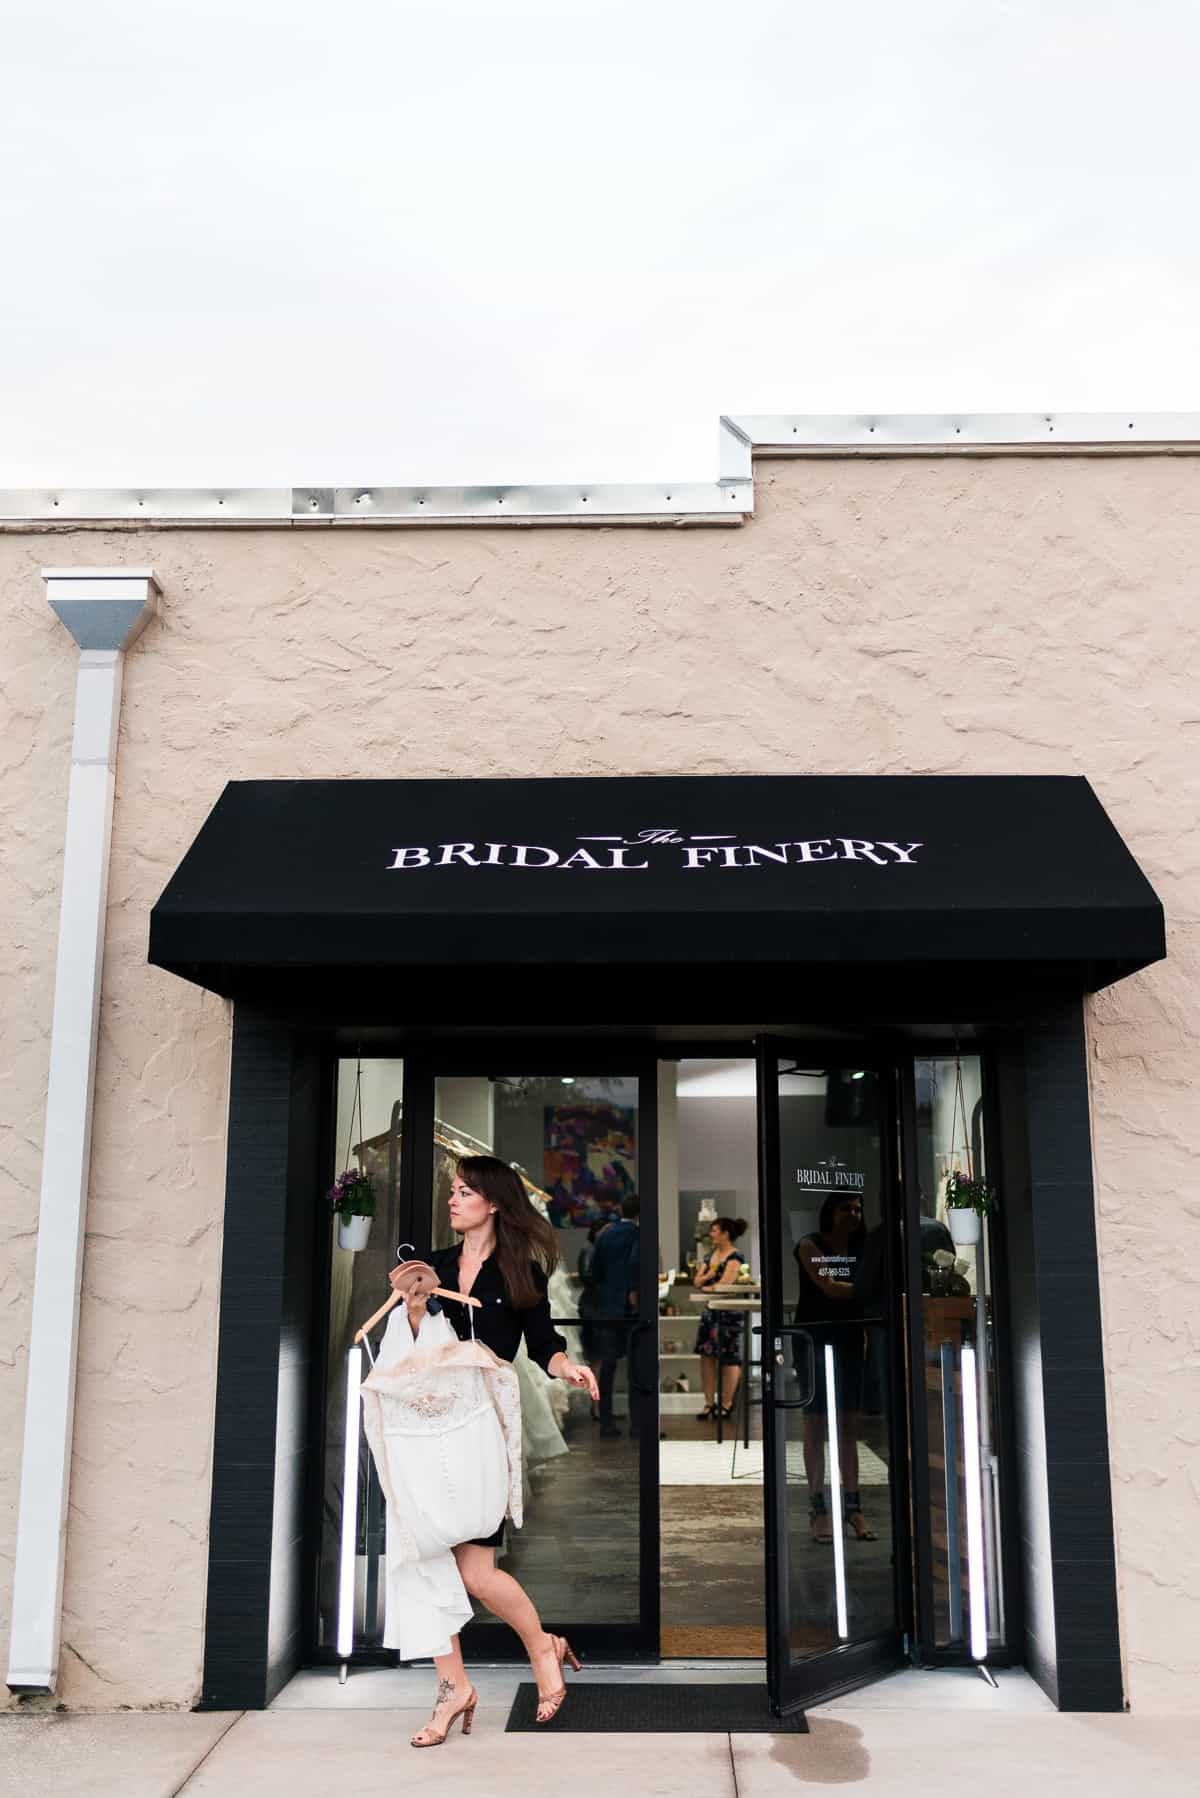 Find your wedding dress on the perfect day… - We believe in booking one bridal appointment at a time. Less is more. Here are recommendations on what pairs well with a bridal appointment at The Bridal Finery.Stay the night at The Alfond Inn. Pick up a tea or coffee at New General. Make it a relaxing morning by booking pedicures at Beautique. Grab a pastry at Buttermilk Bakery. Enjoy your bridal appointment. Stop by the Heavy to see their flower bar. Have a celebratory dinner on the lake at Hillstone or a casual dine at The Porch.